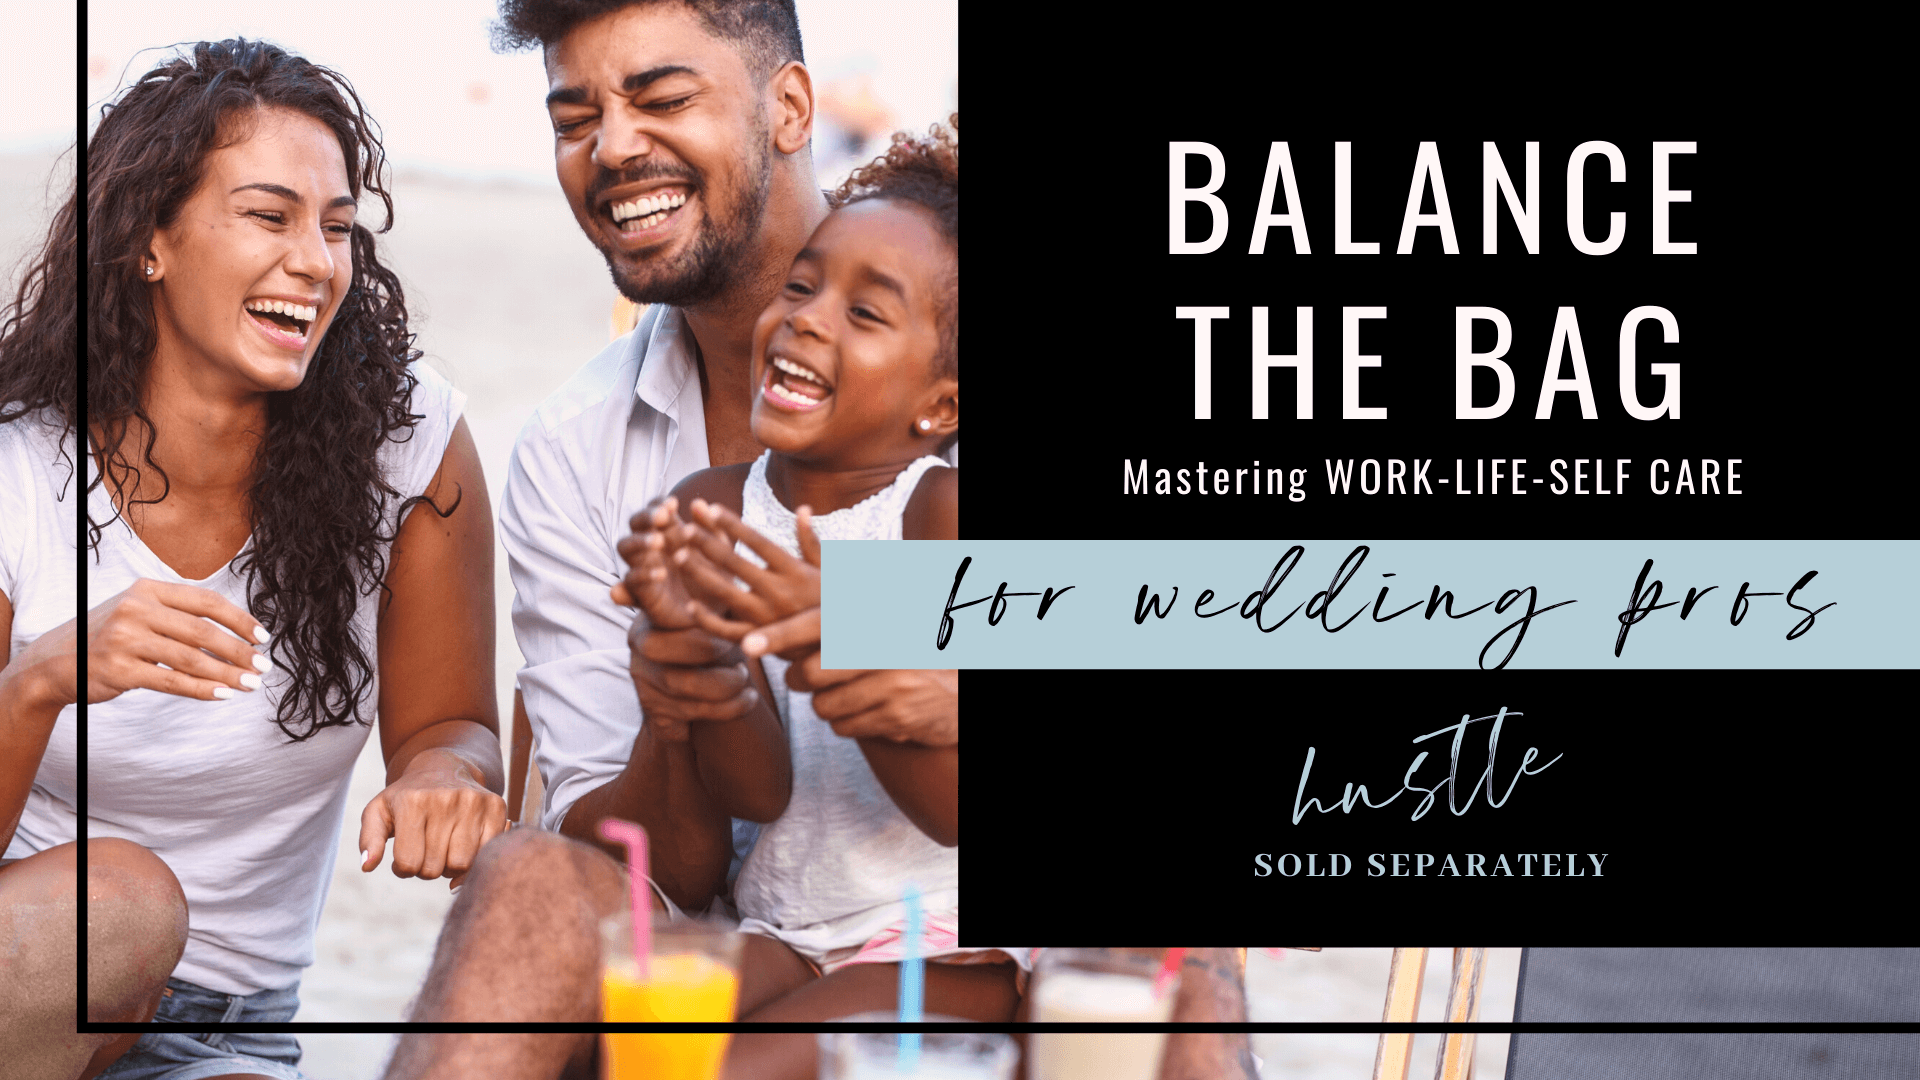 Balance your work and life as a growing wedding pro